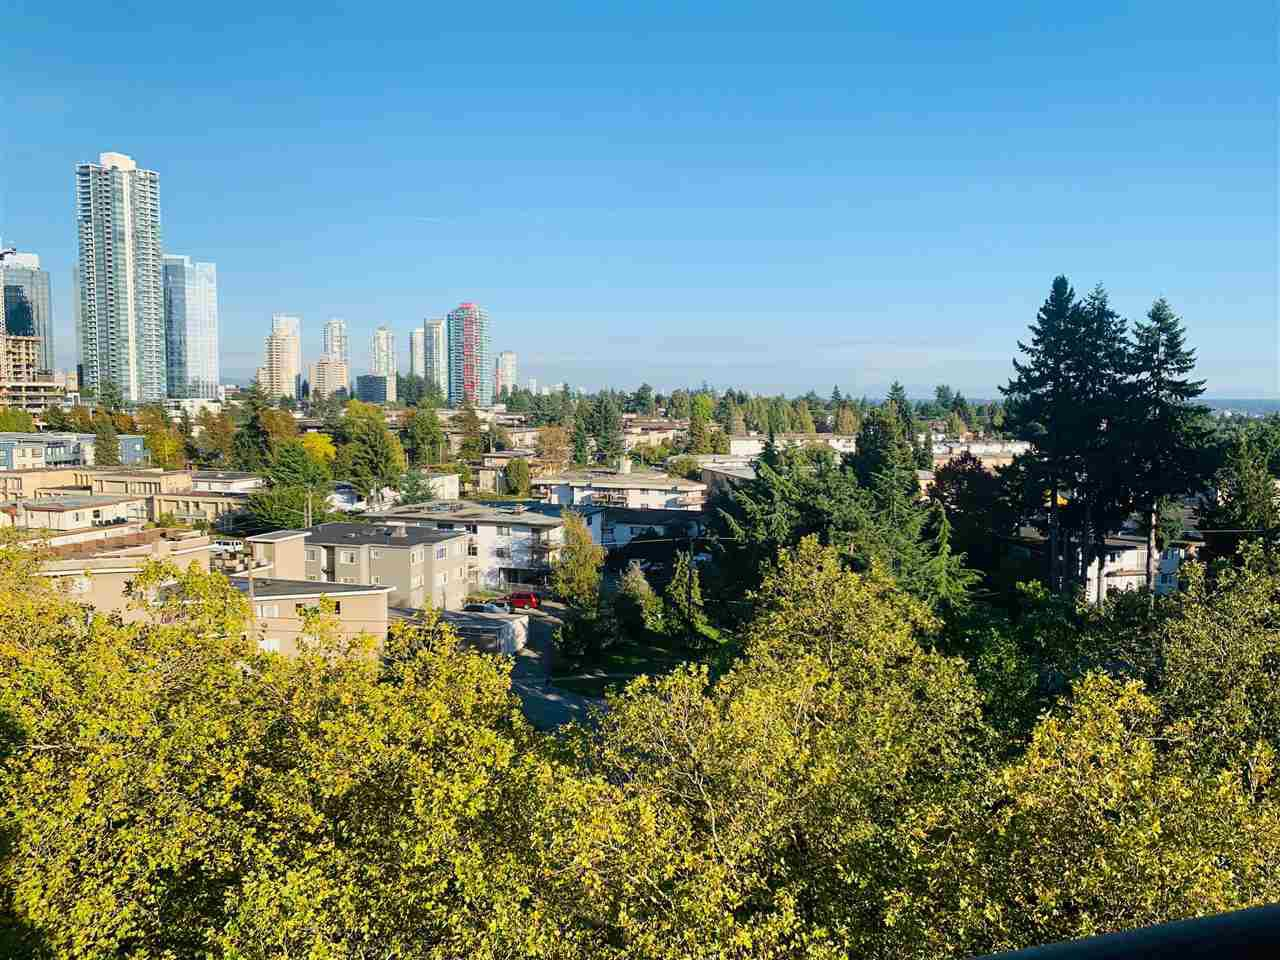 Main Photo: 905 4194 MAYWOOD STREET in Burnaby: Metrotown Condo for sale (Burnaby South)  : MLS®# R2408991